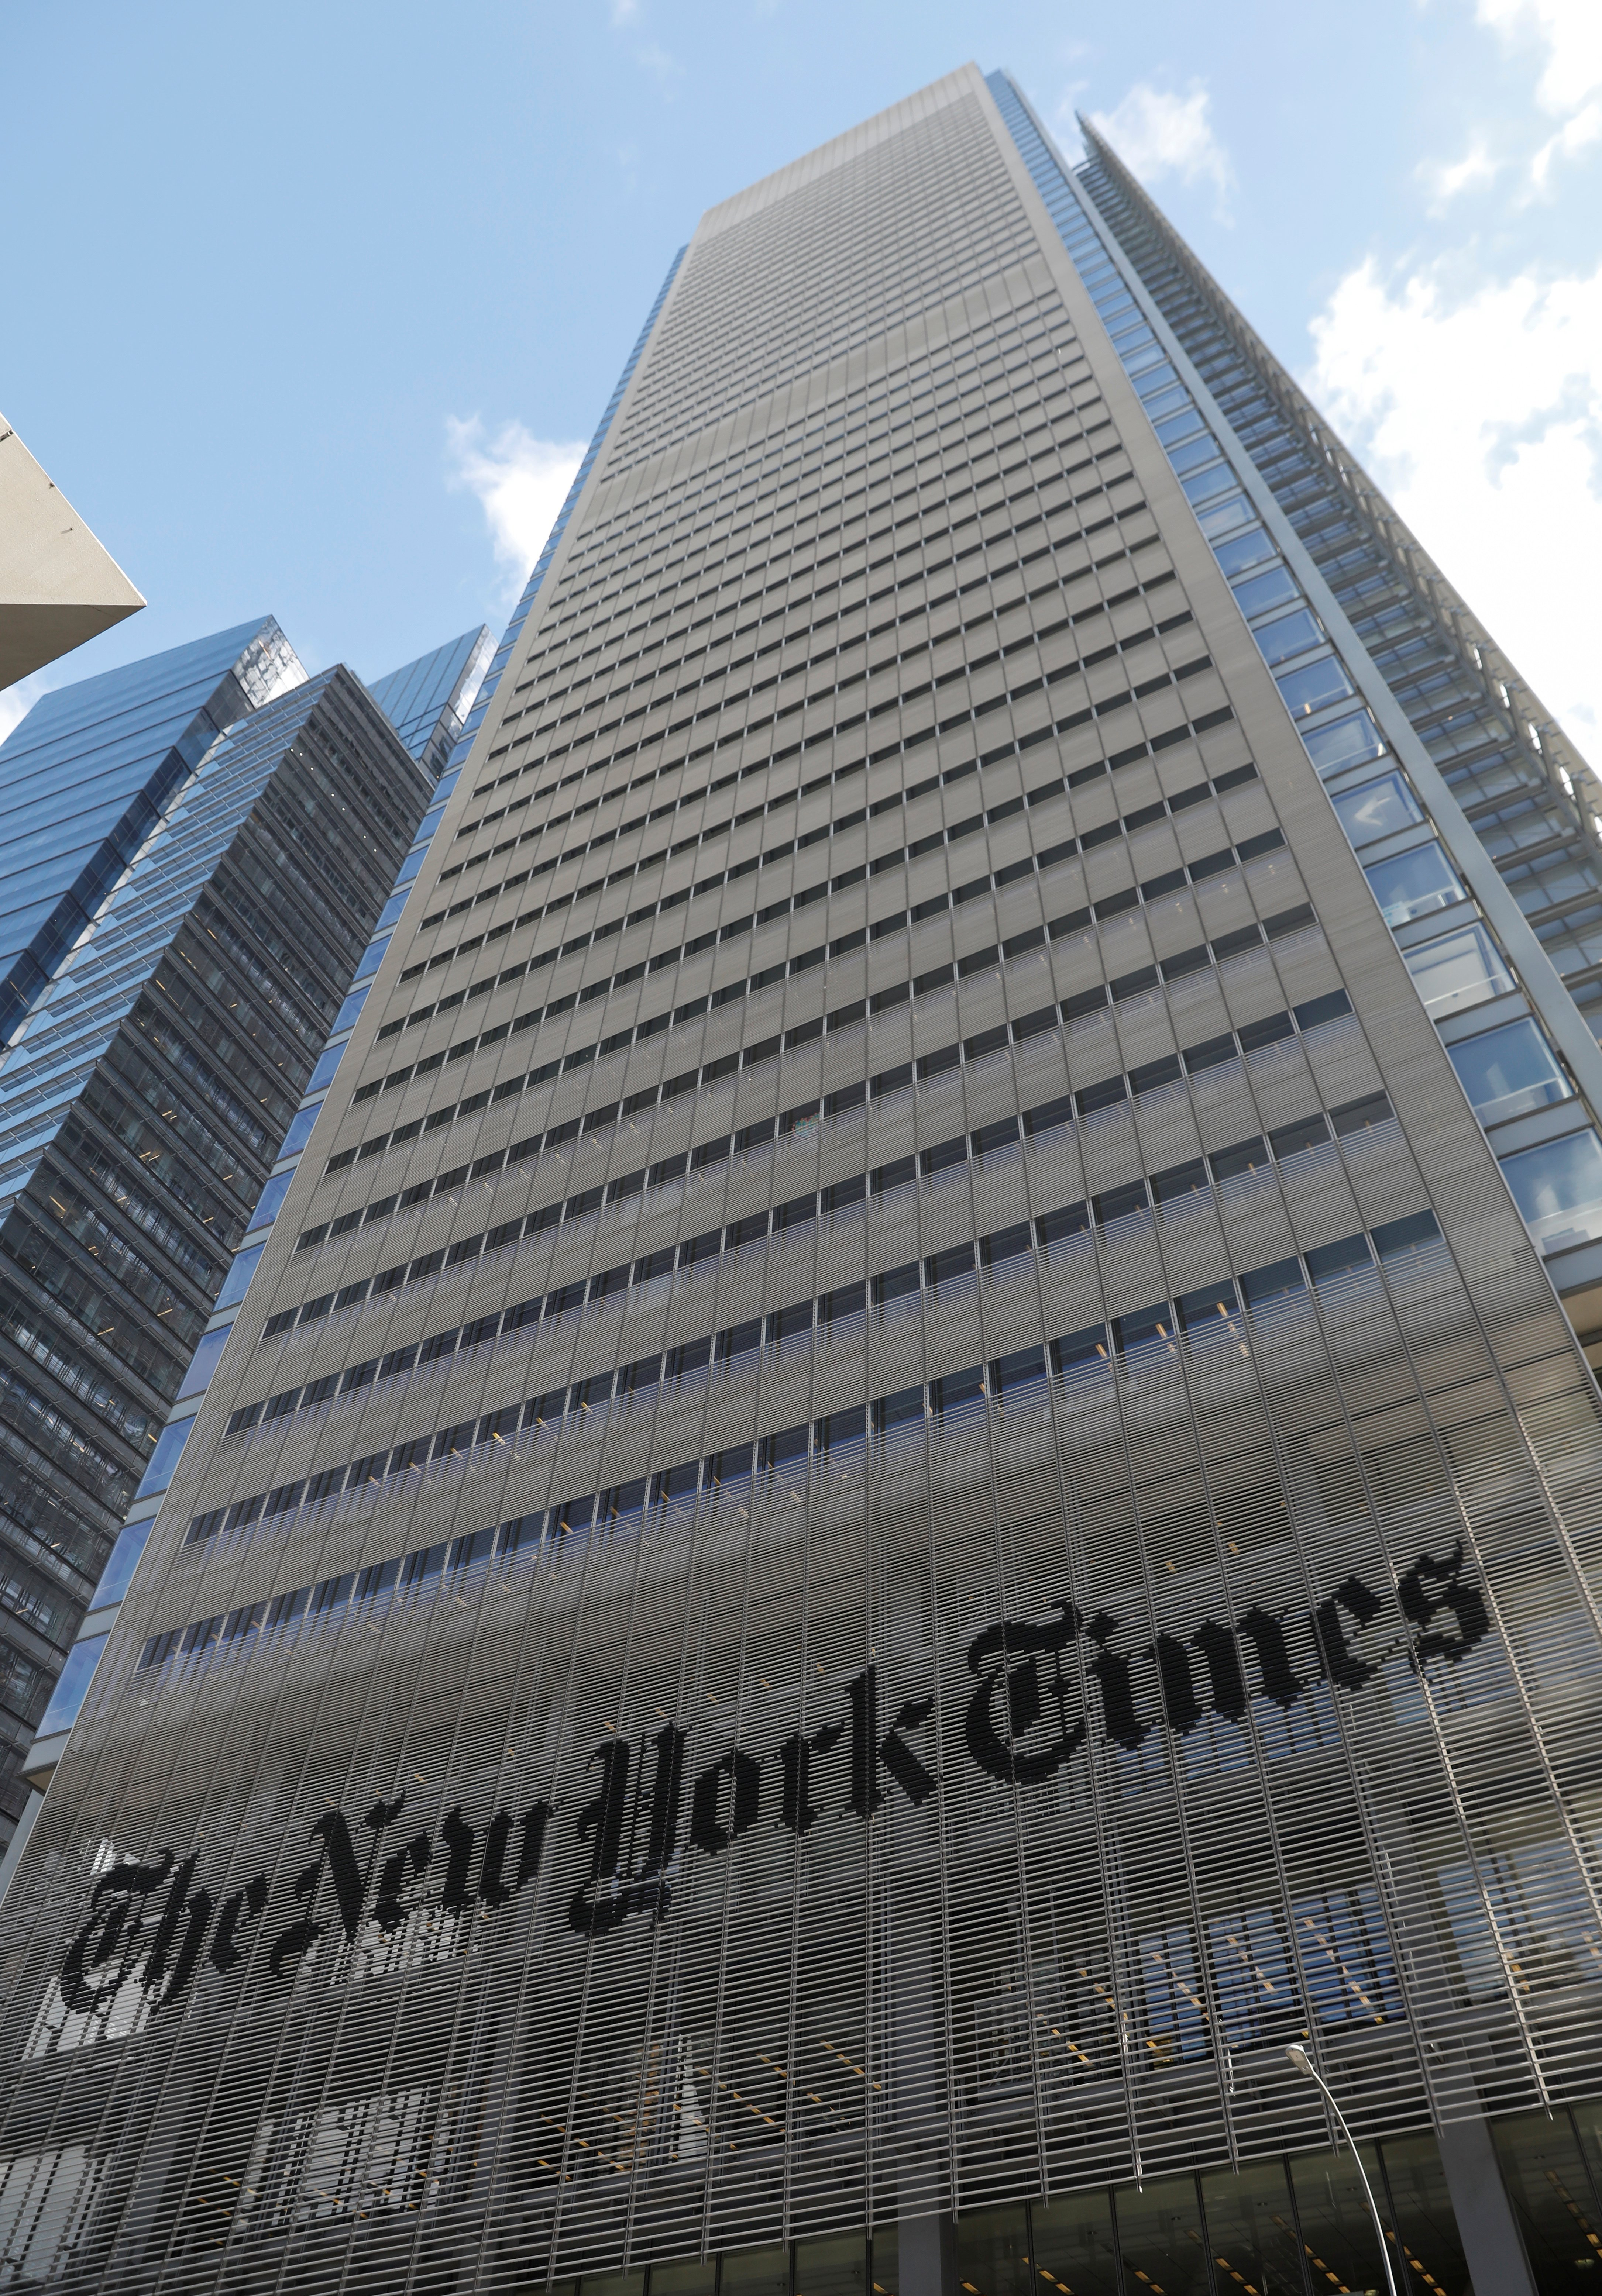 The New York Times building is seen in Manhattan, New York